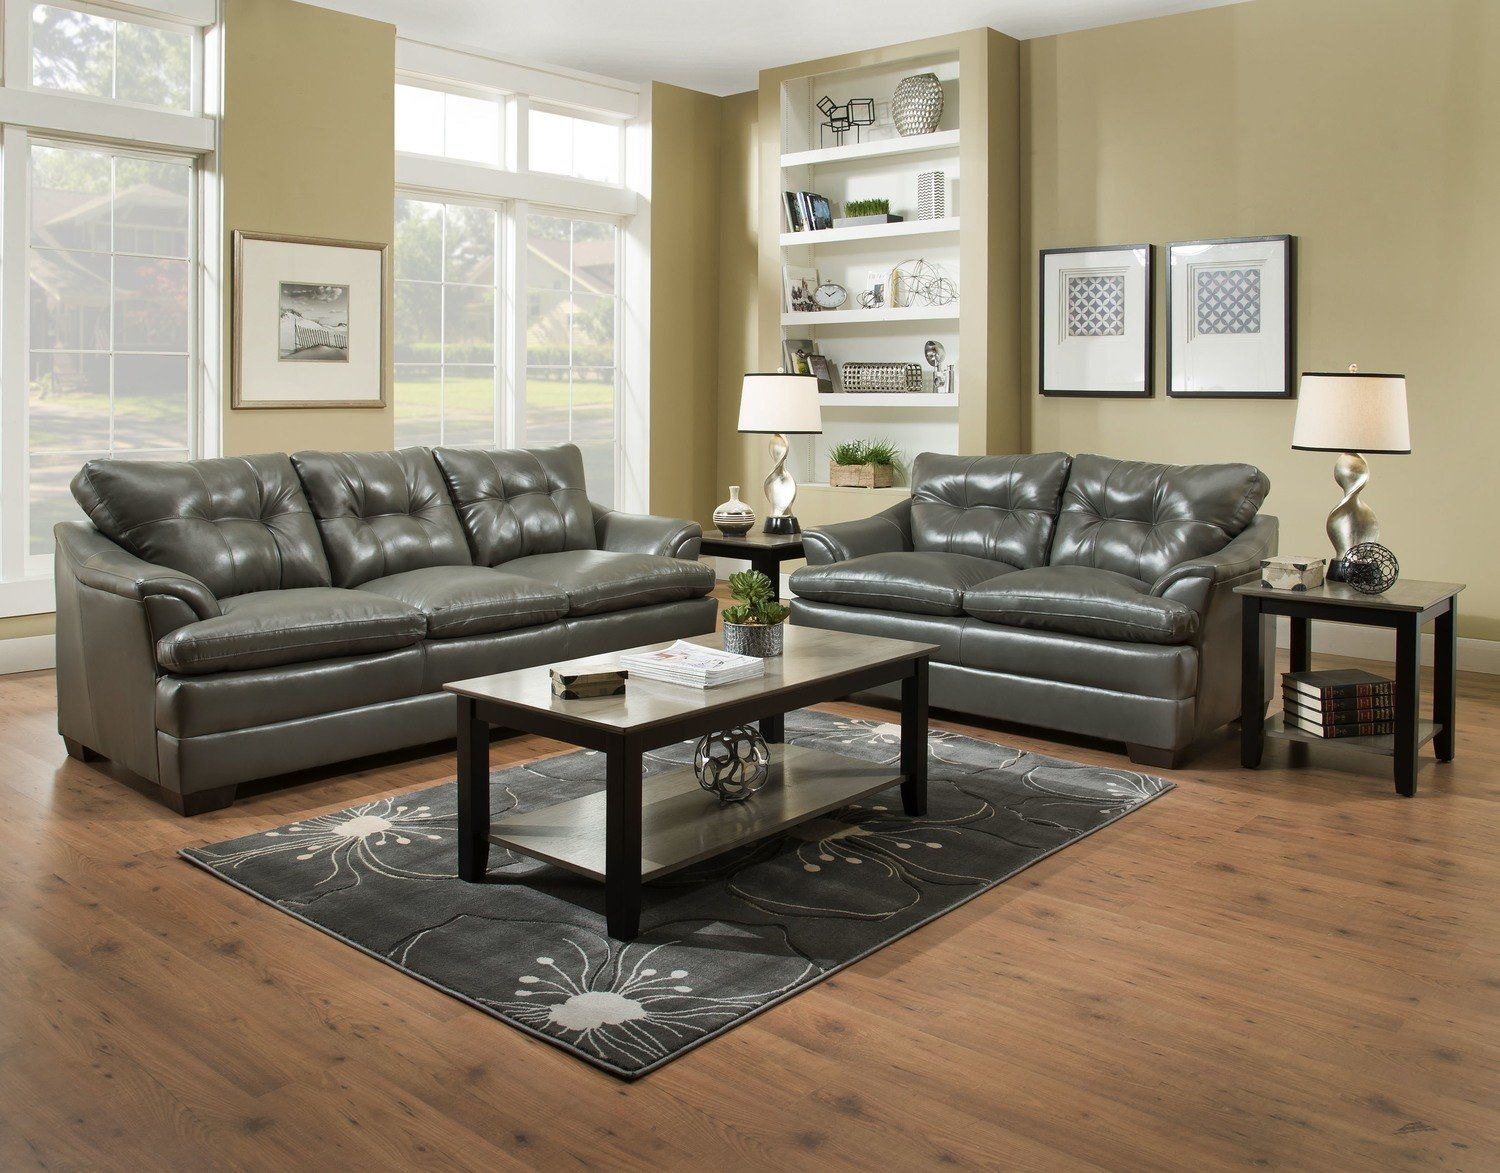 Best Apollo Charcoal Sofa And Love Seat Set 5122 799 00 640 x 480